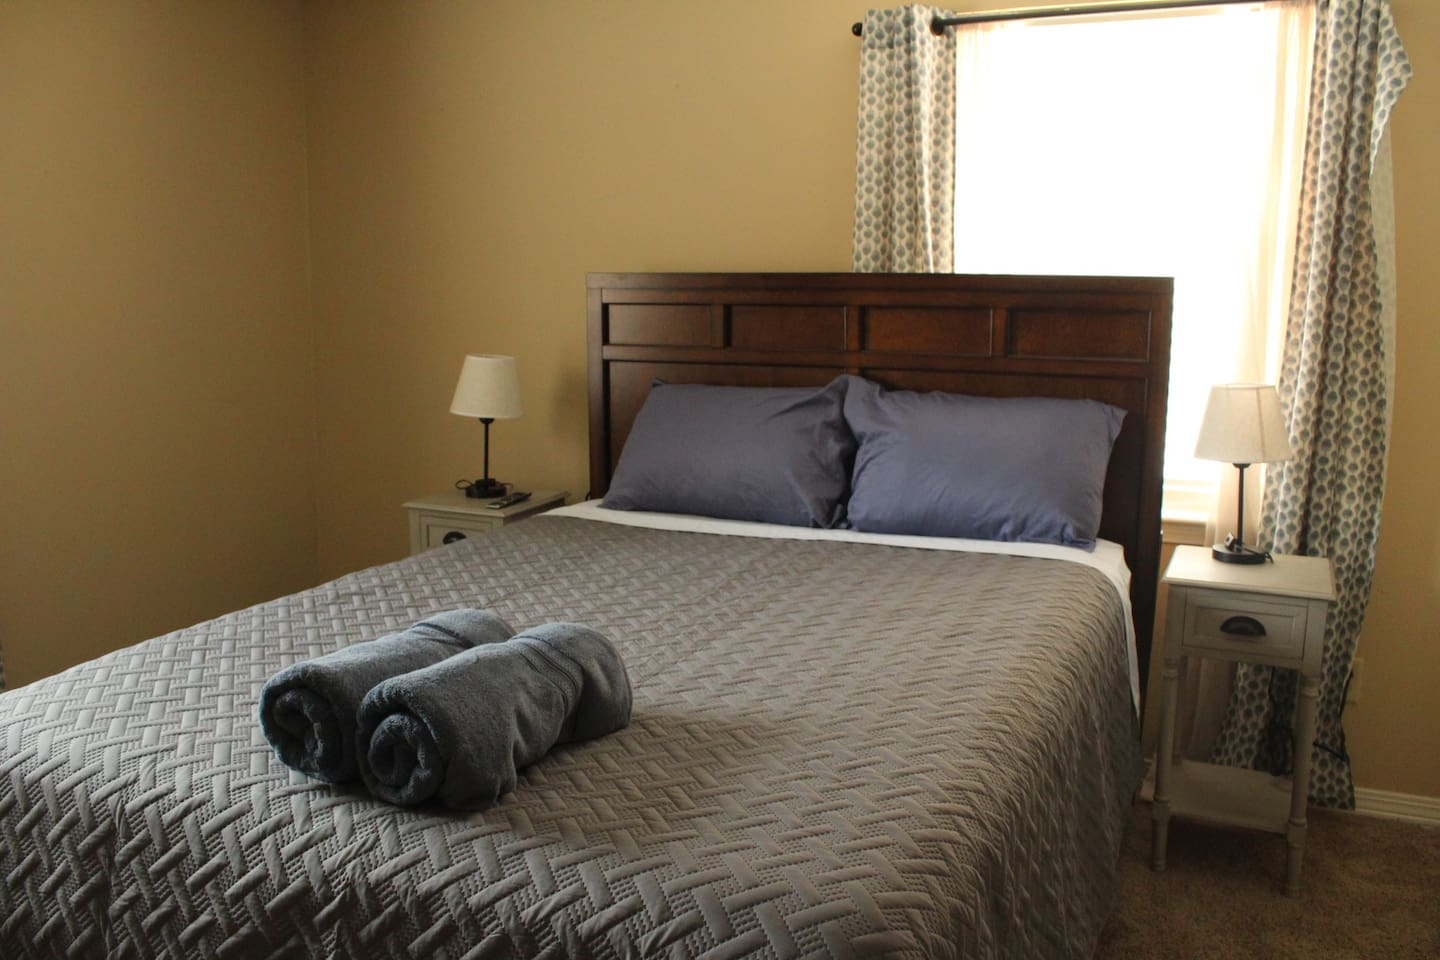 Queen size bed with brand new sheets.